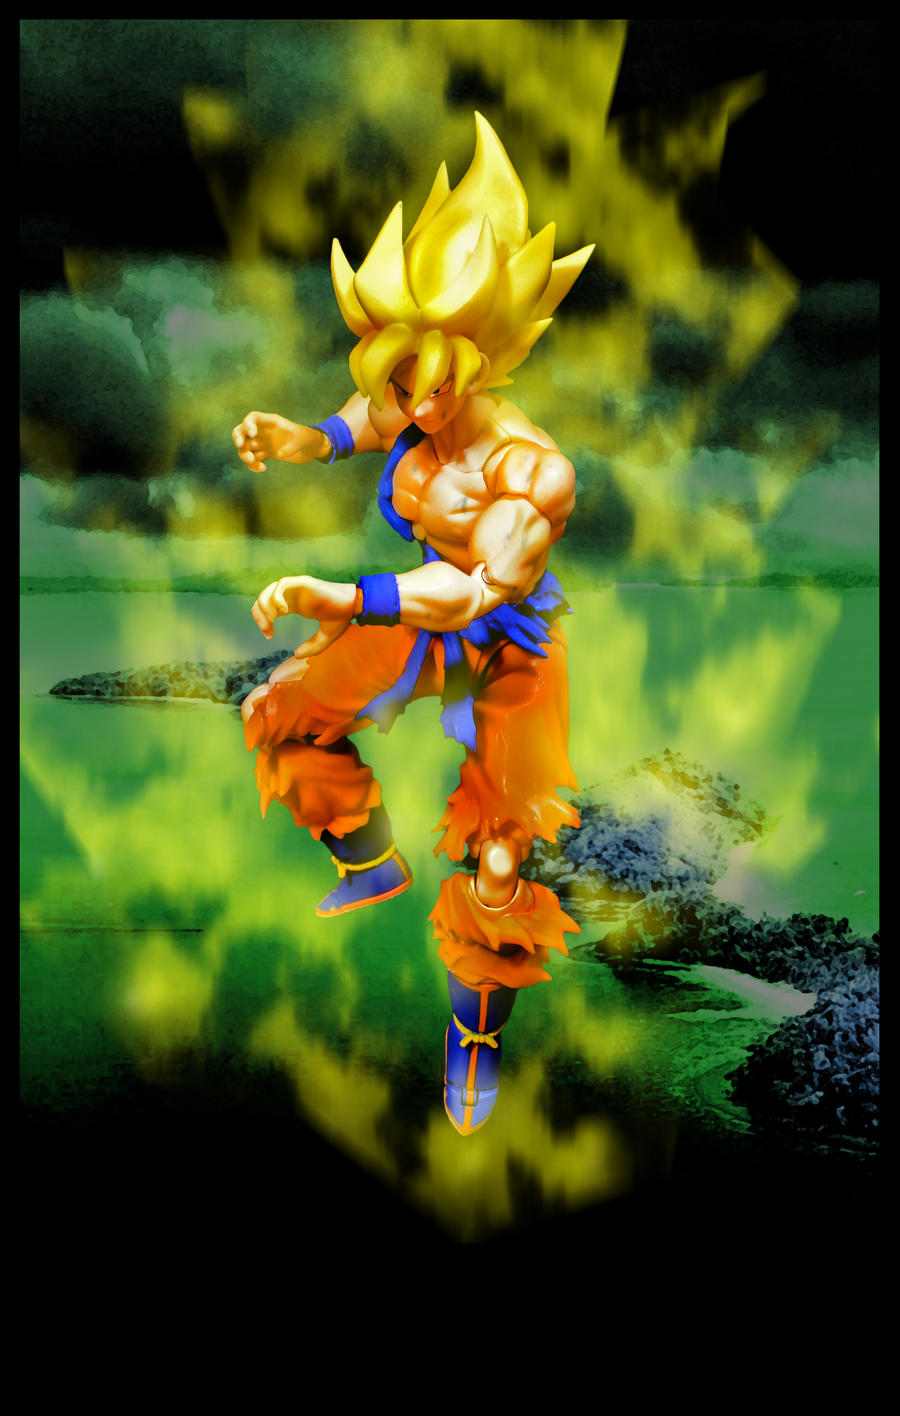 Goku - The Super Saiyan Warrior by SUnicron